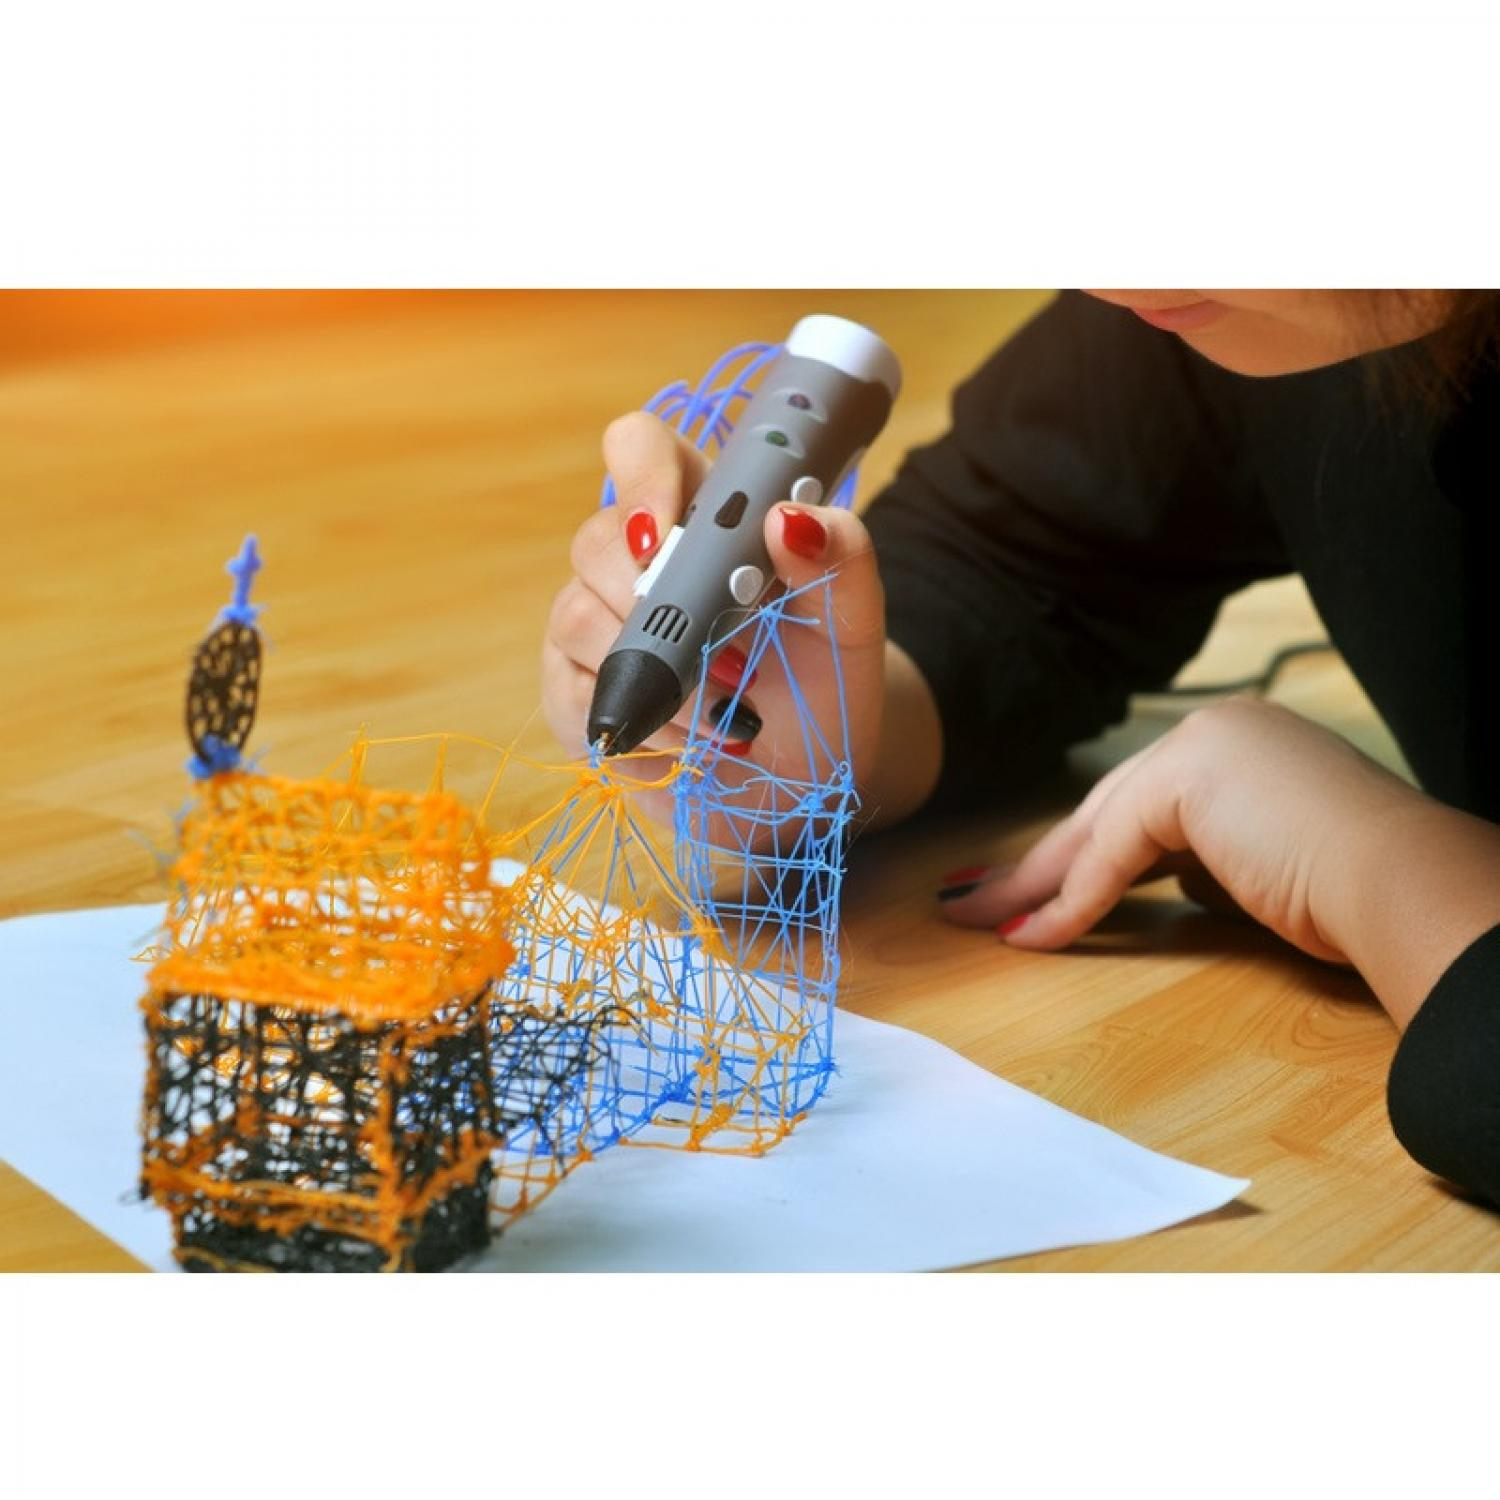 3D Stereoscopic Printing Pen for 3D Drawing